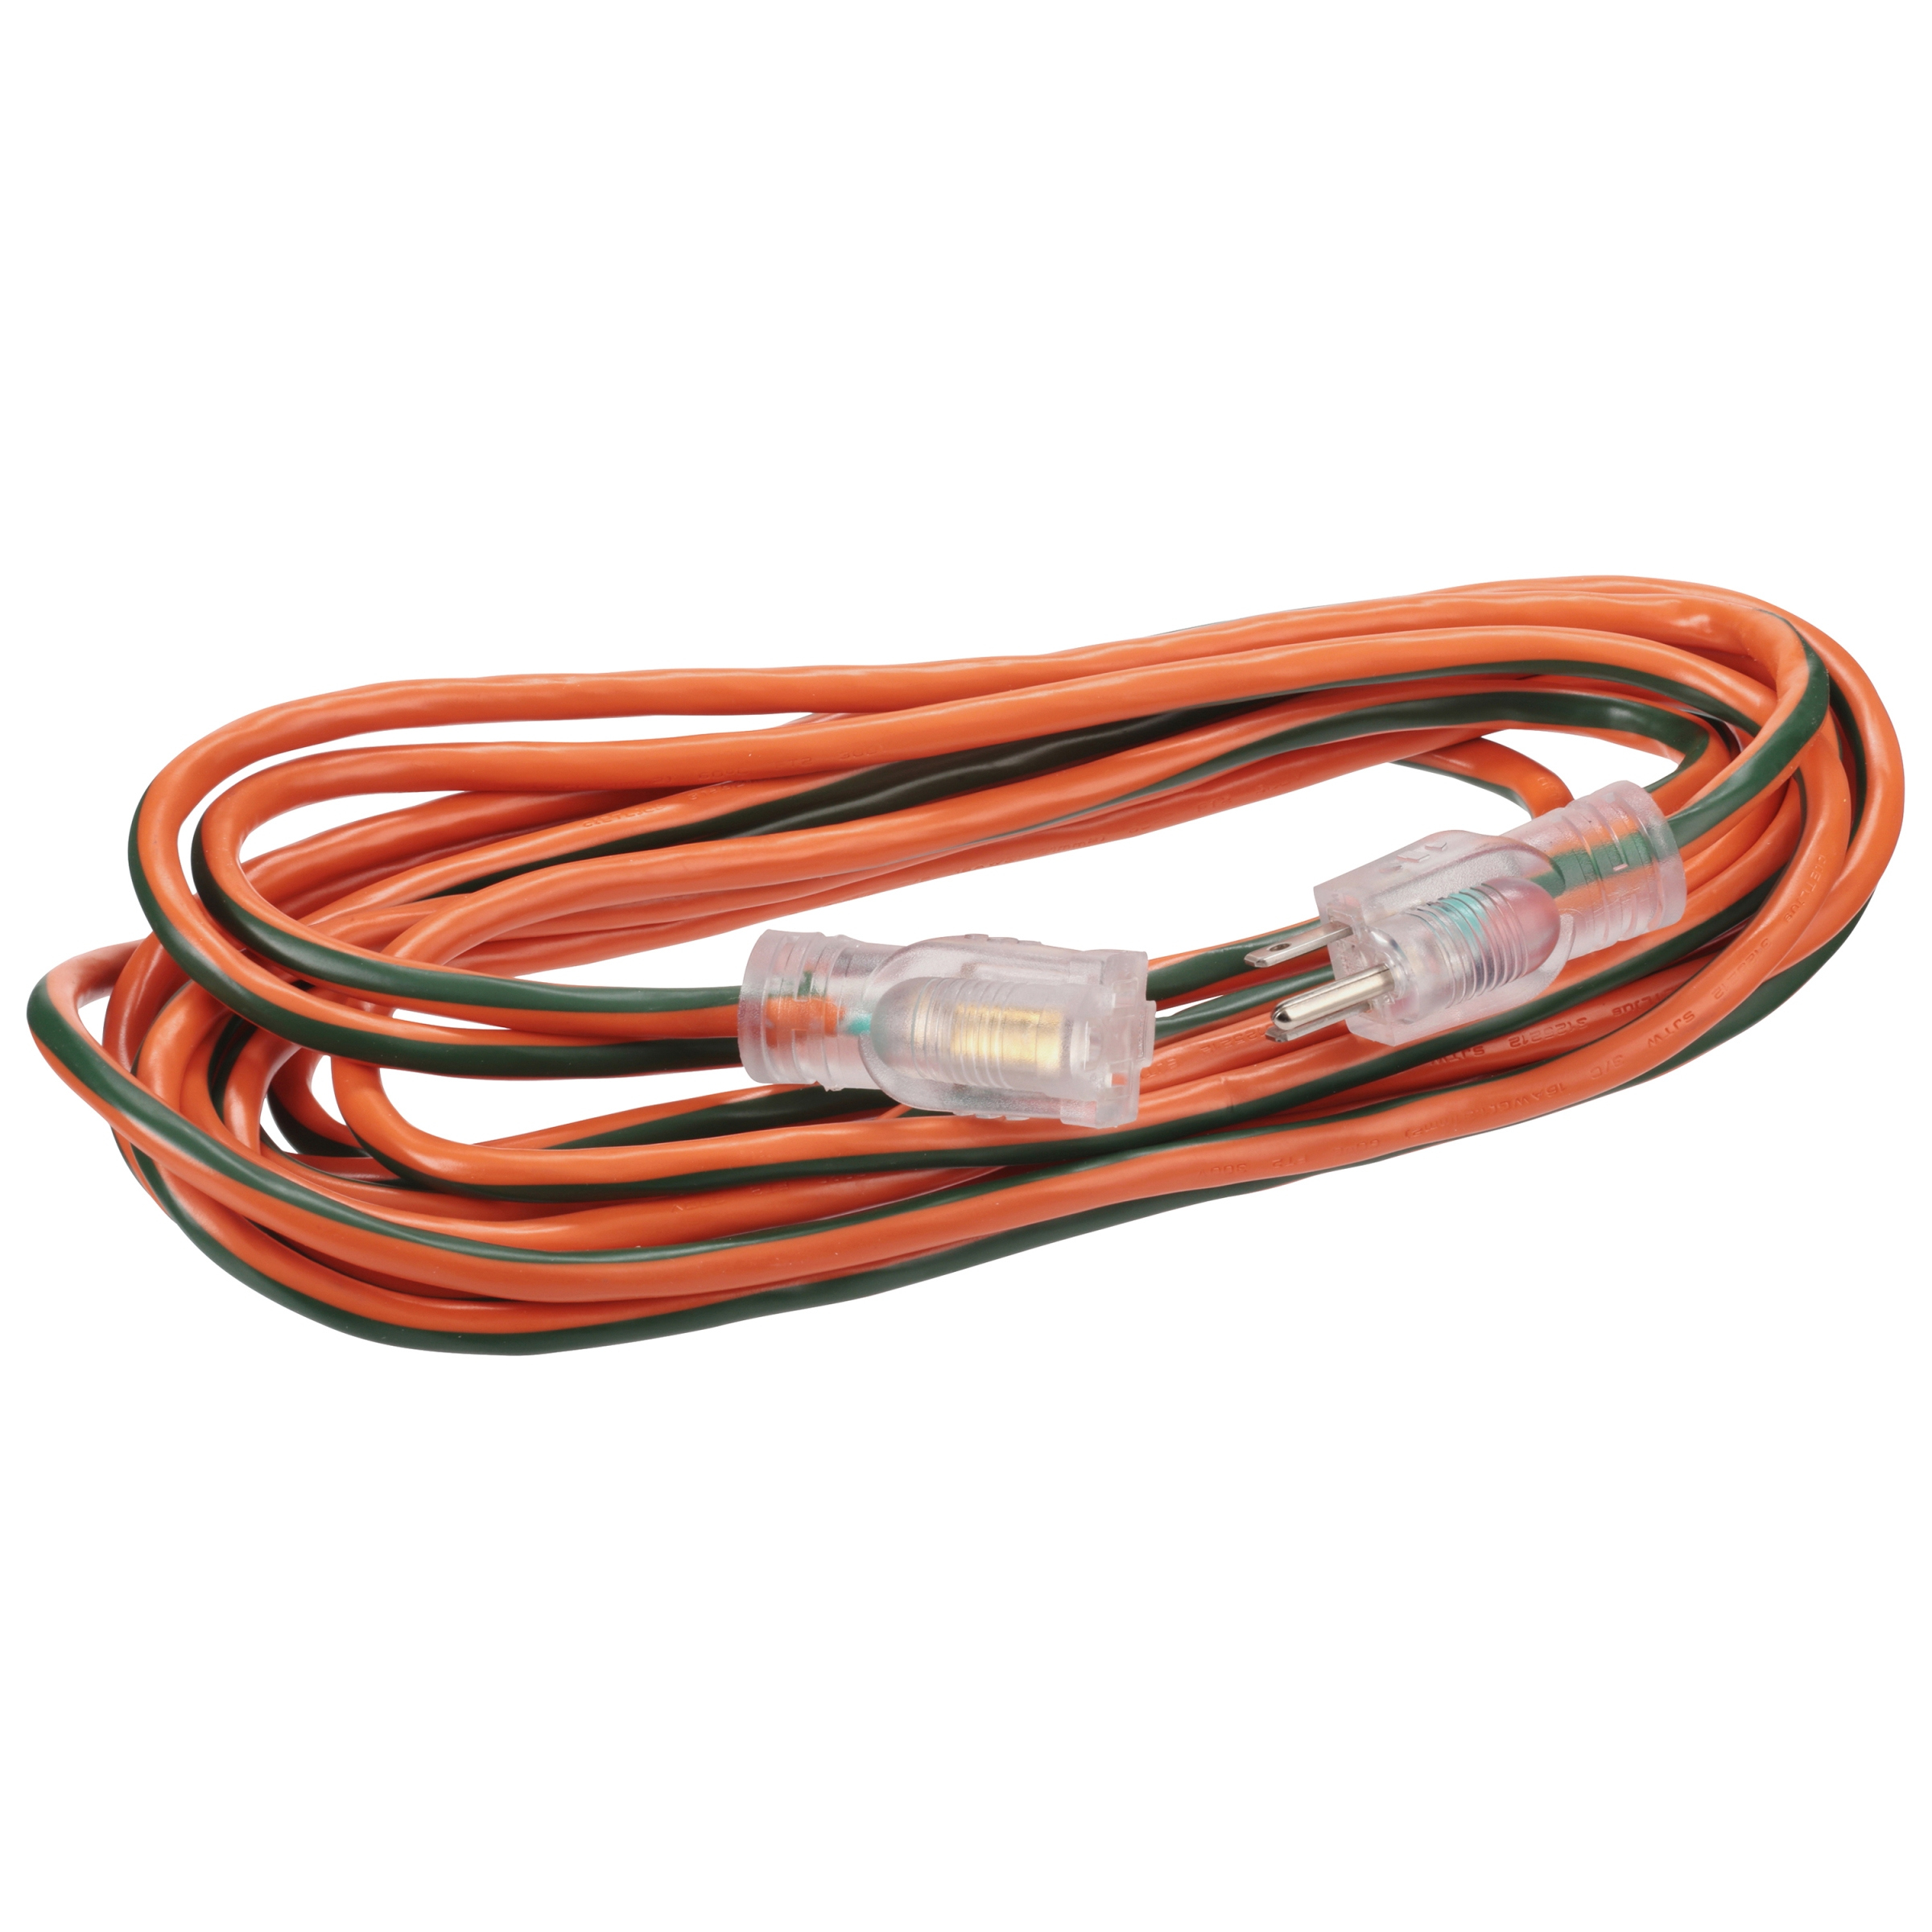 GoGreen Power 16 3 13725 25' Heavy-Duty Extension Cord, Lighted End by GoGreen Power, Inc.